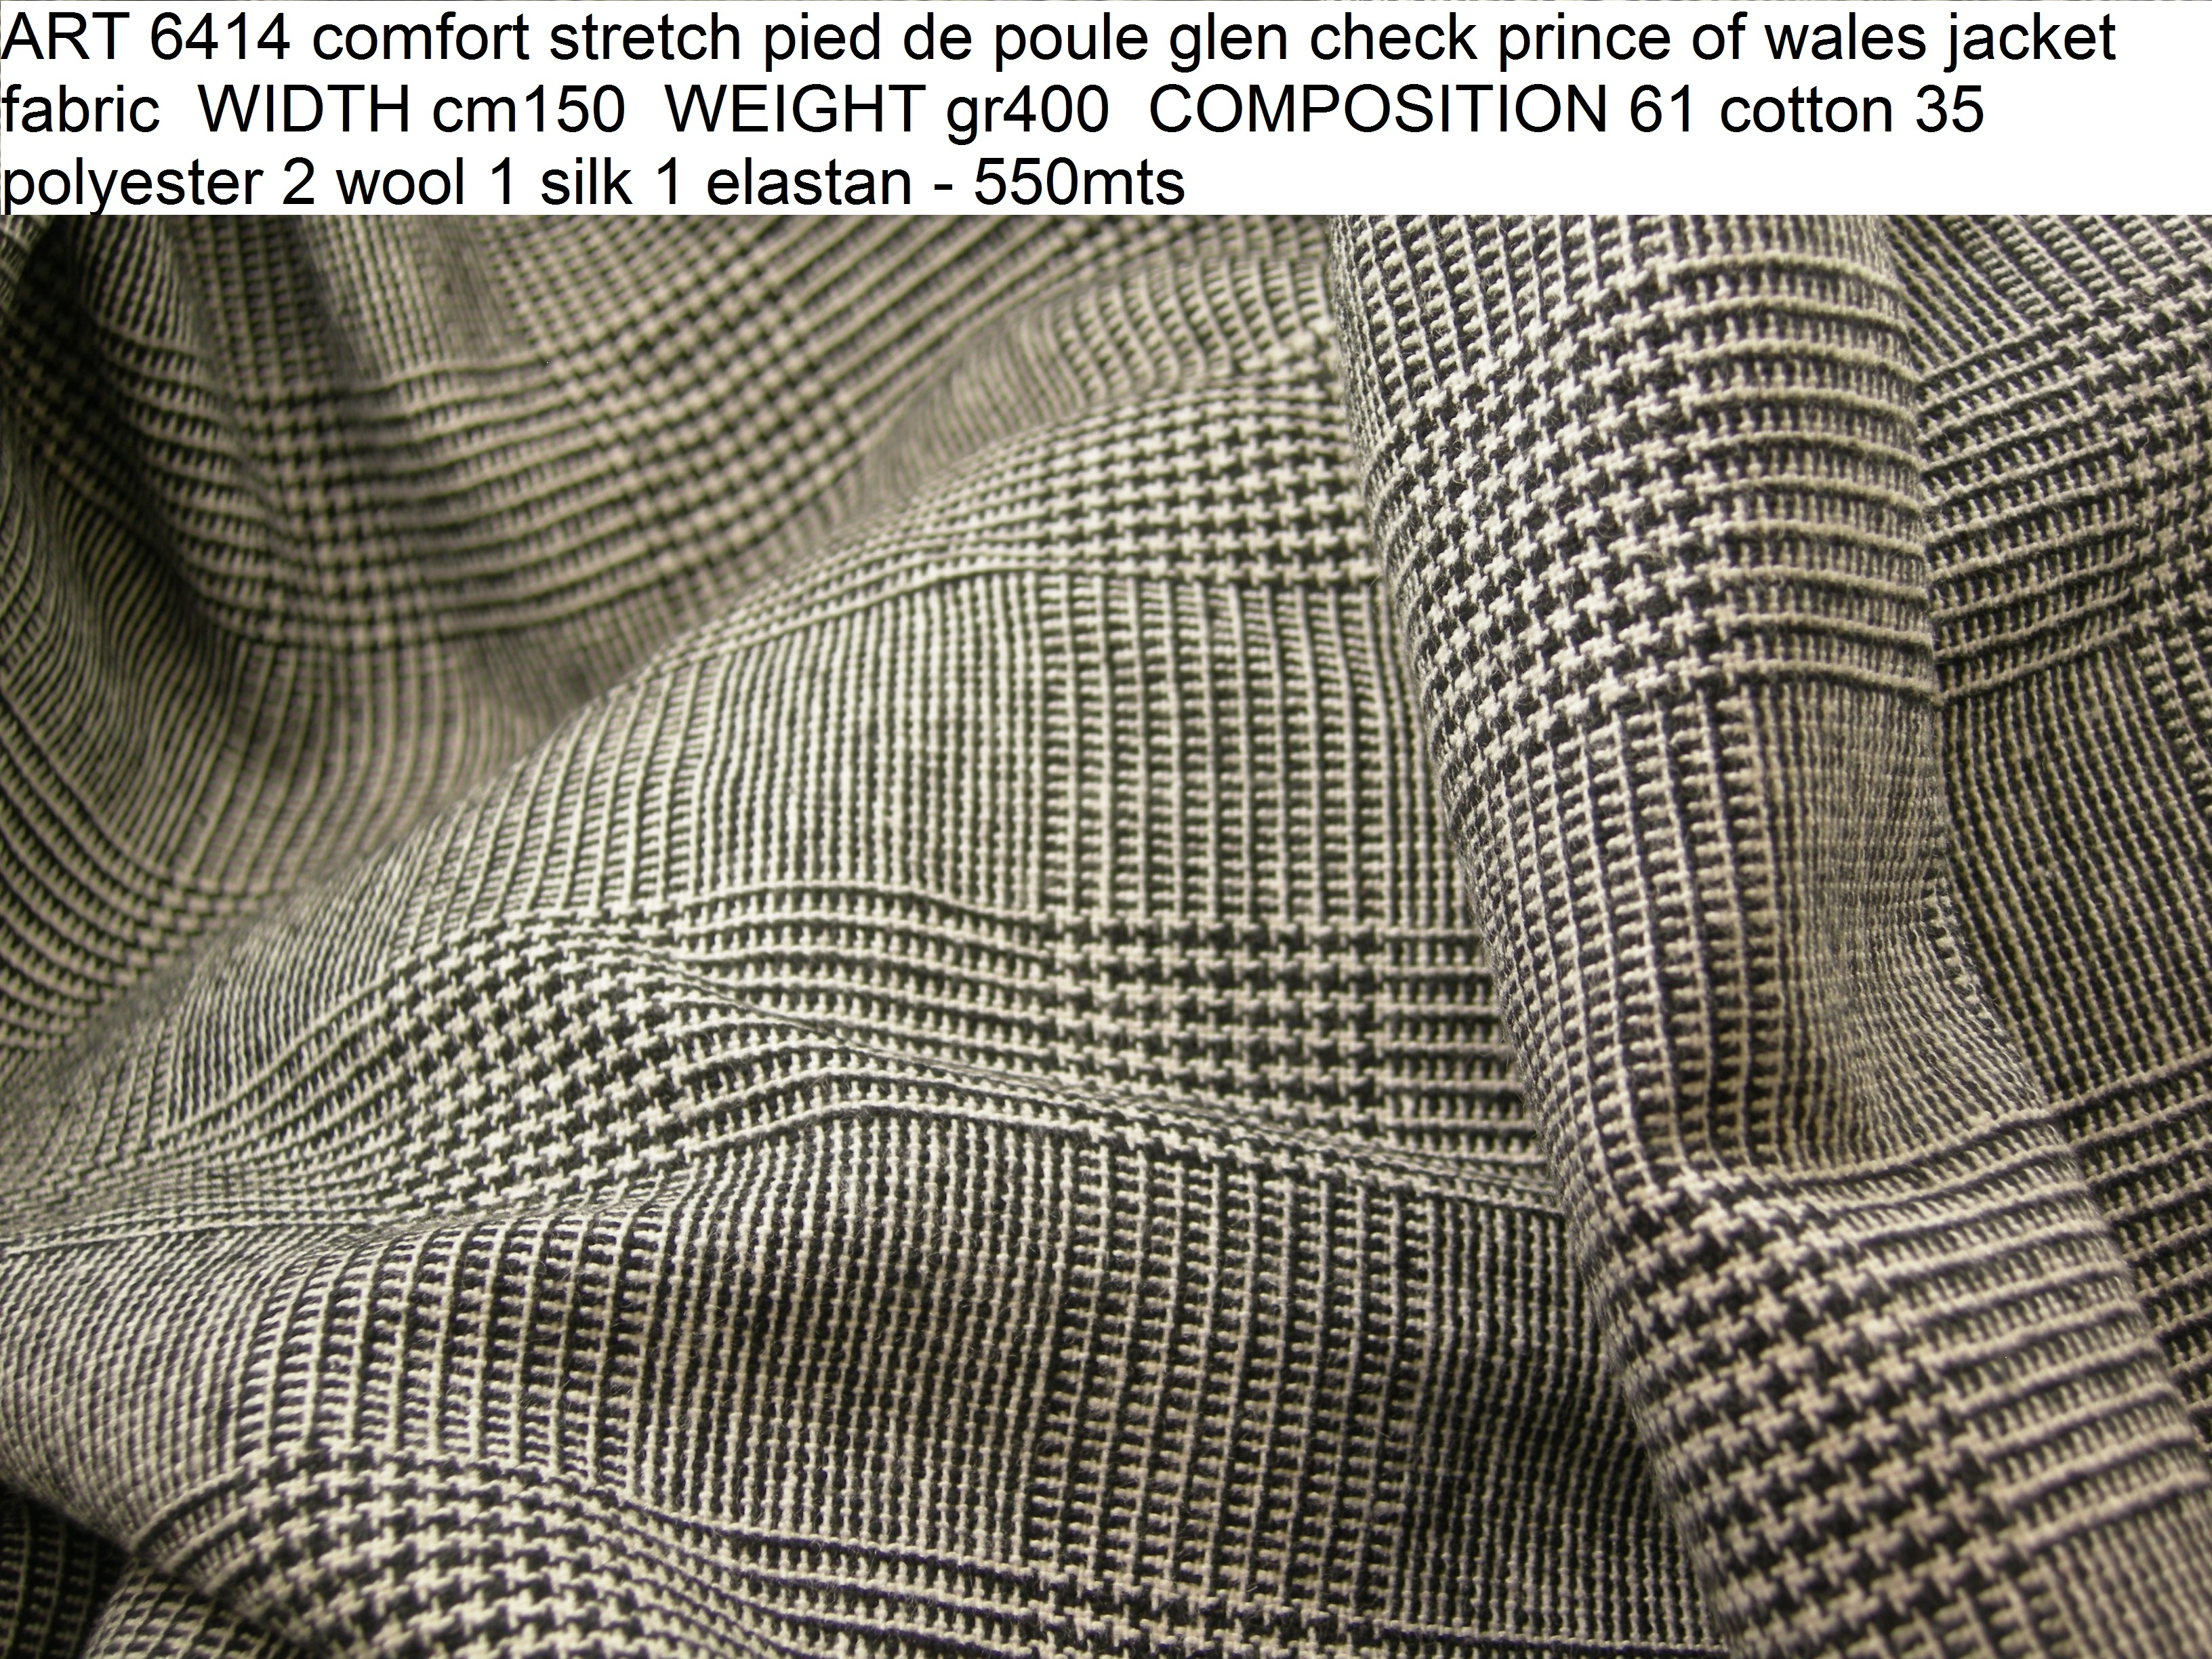 ART 6414 comfort stretch pied de poule glen check prince of wales jacket fabric WIDTH cm150 WEIGHT gr400 COMPOSITION 61 cotton 35 polyester 2 wool 1 silk 1 elastan - 550mts